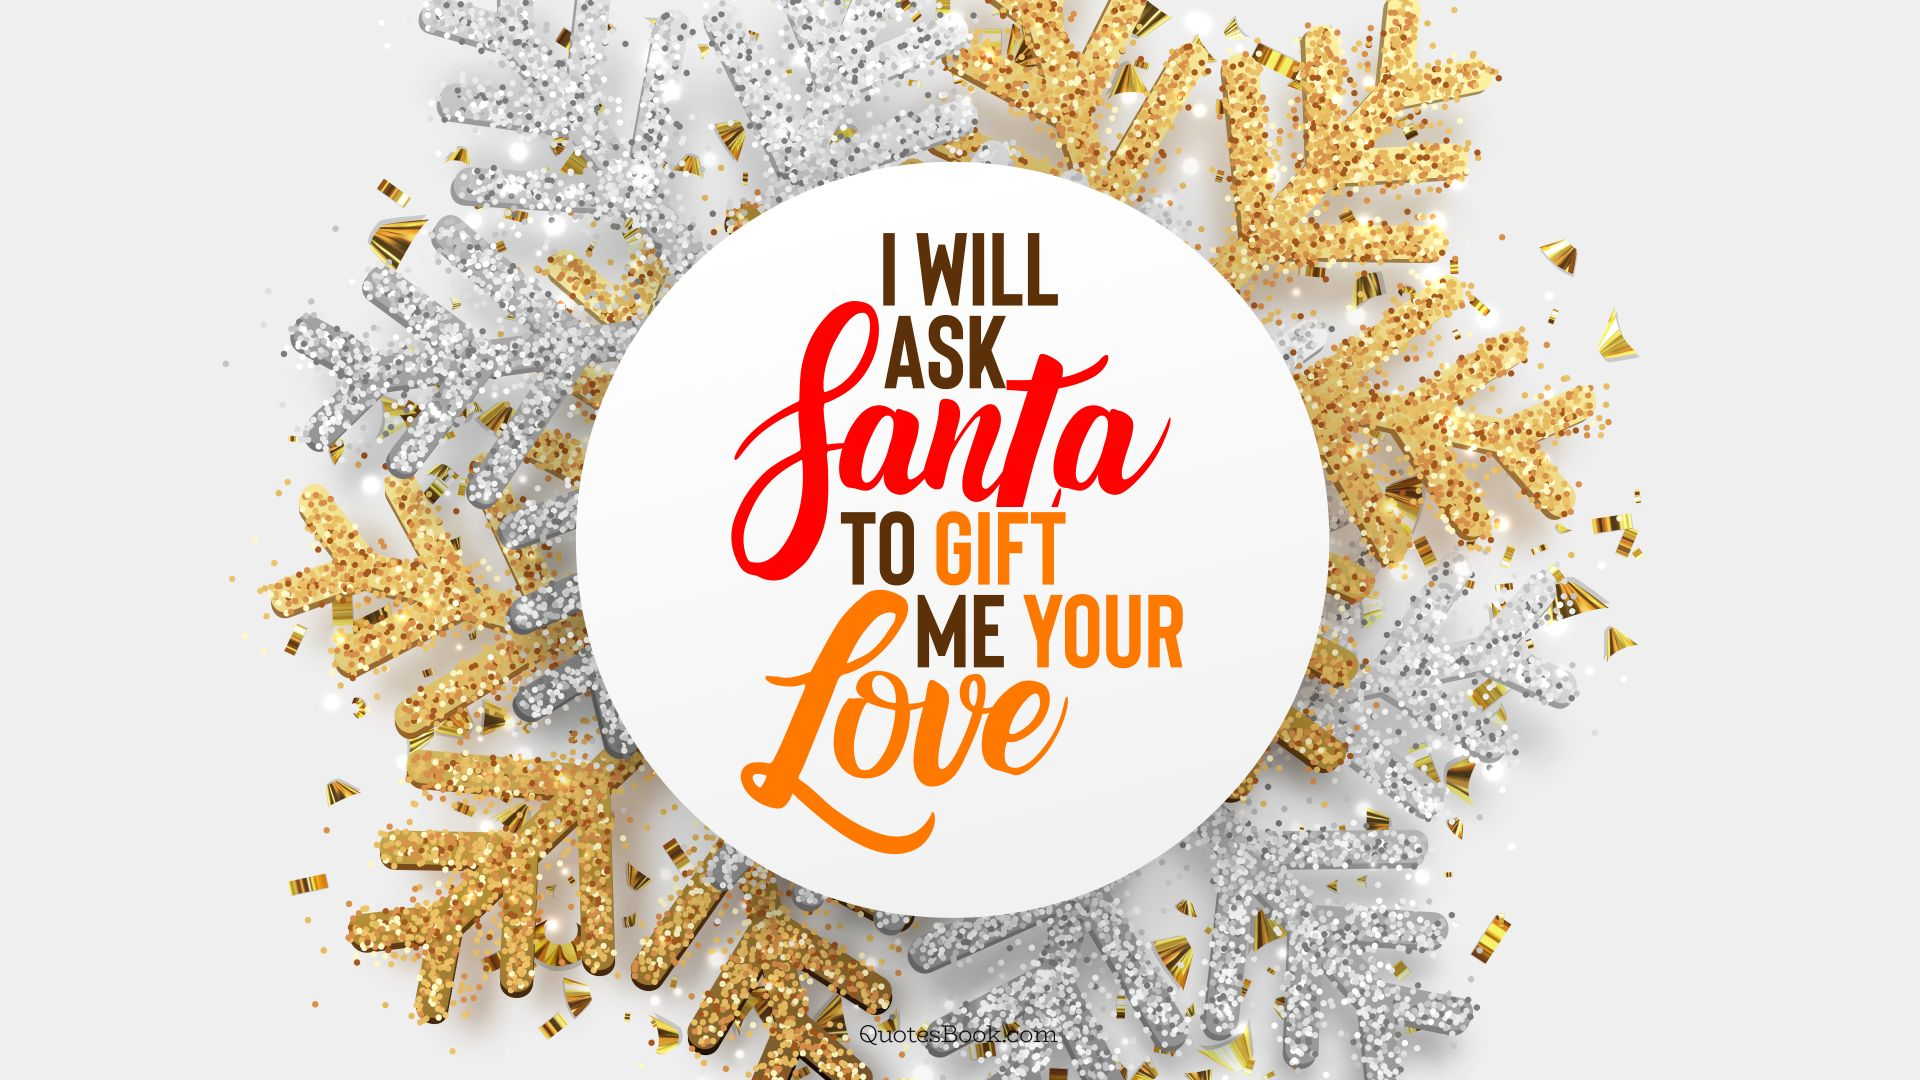 I will ask Santa to gift me your love. - Quote by QuotesBook